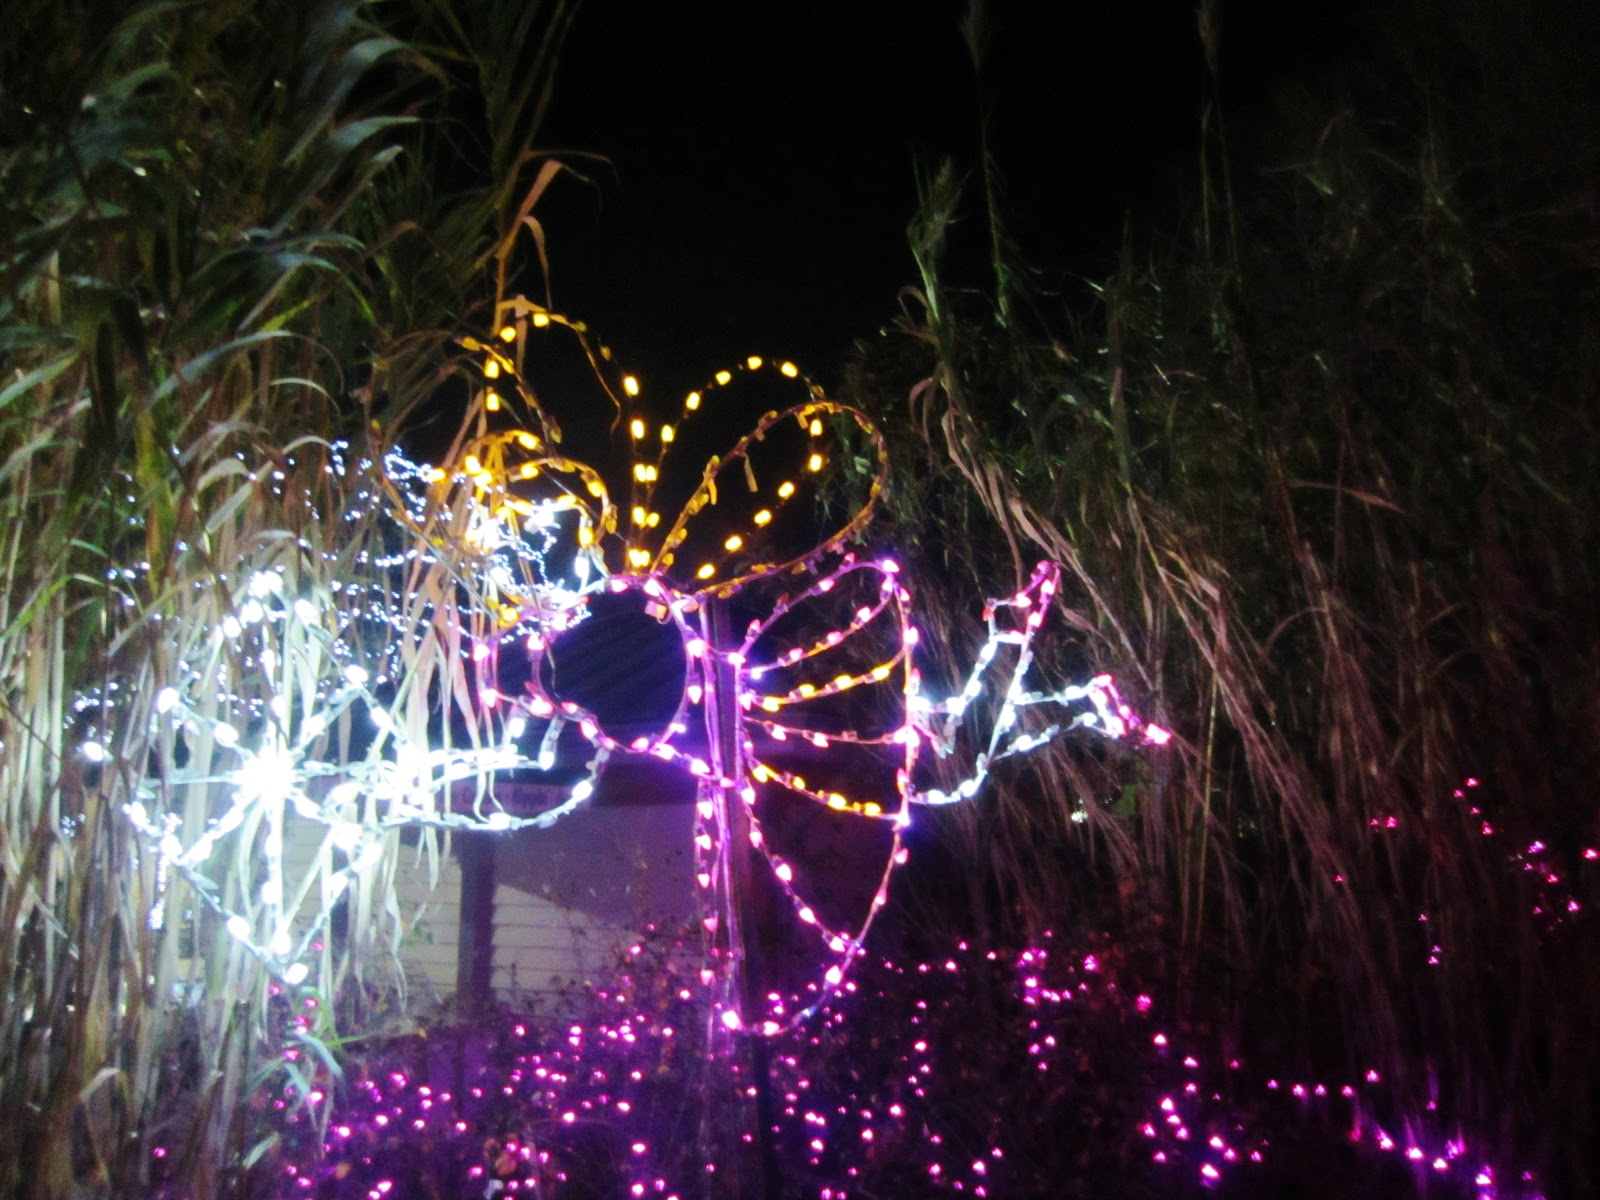 Fairy princess Christmas lights at the zoo.